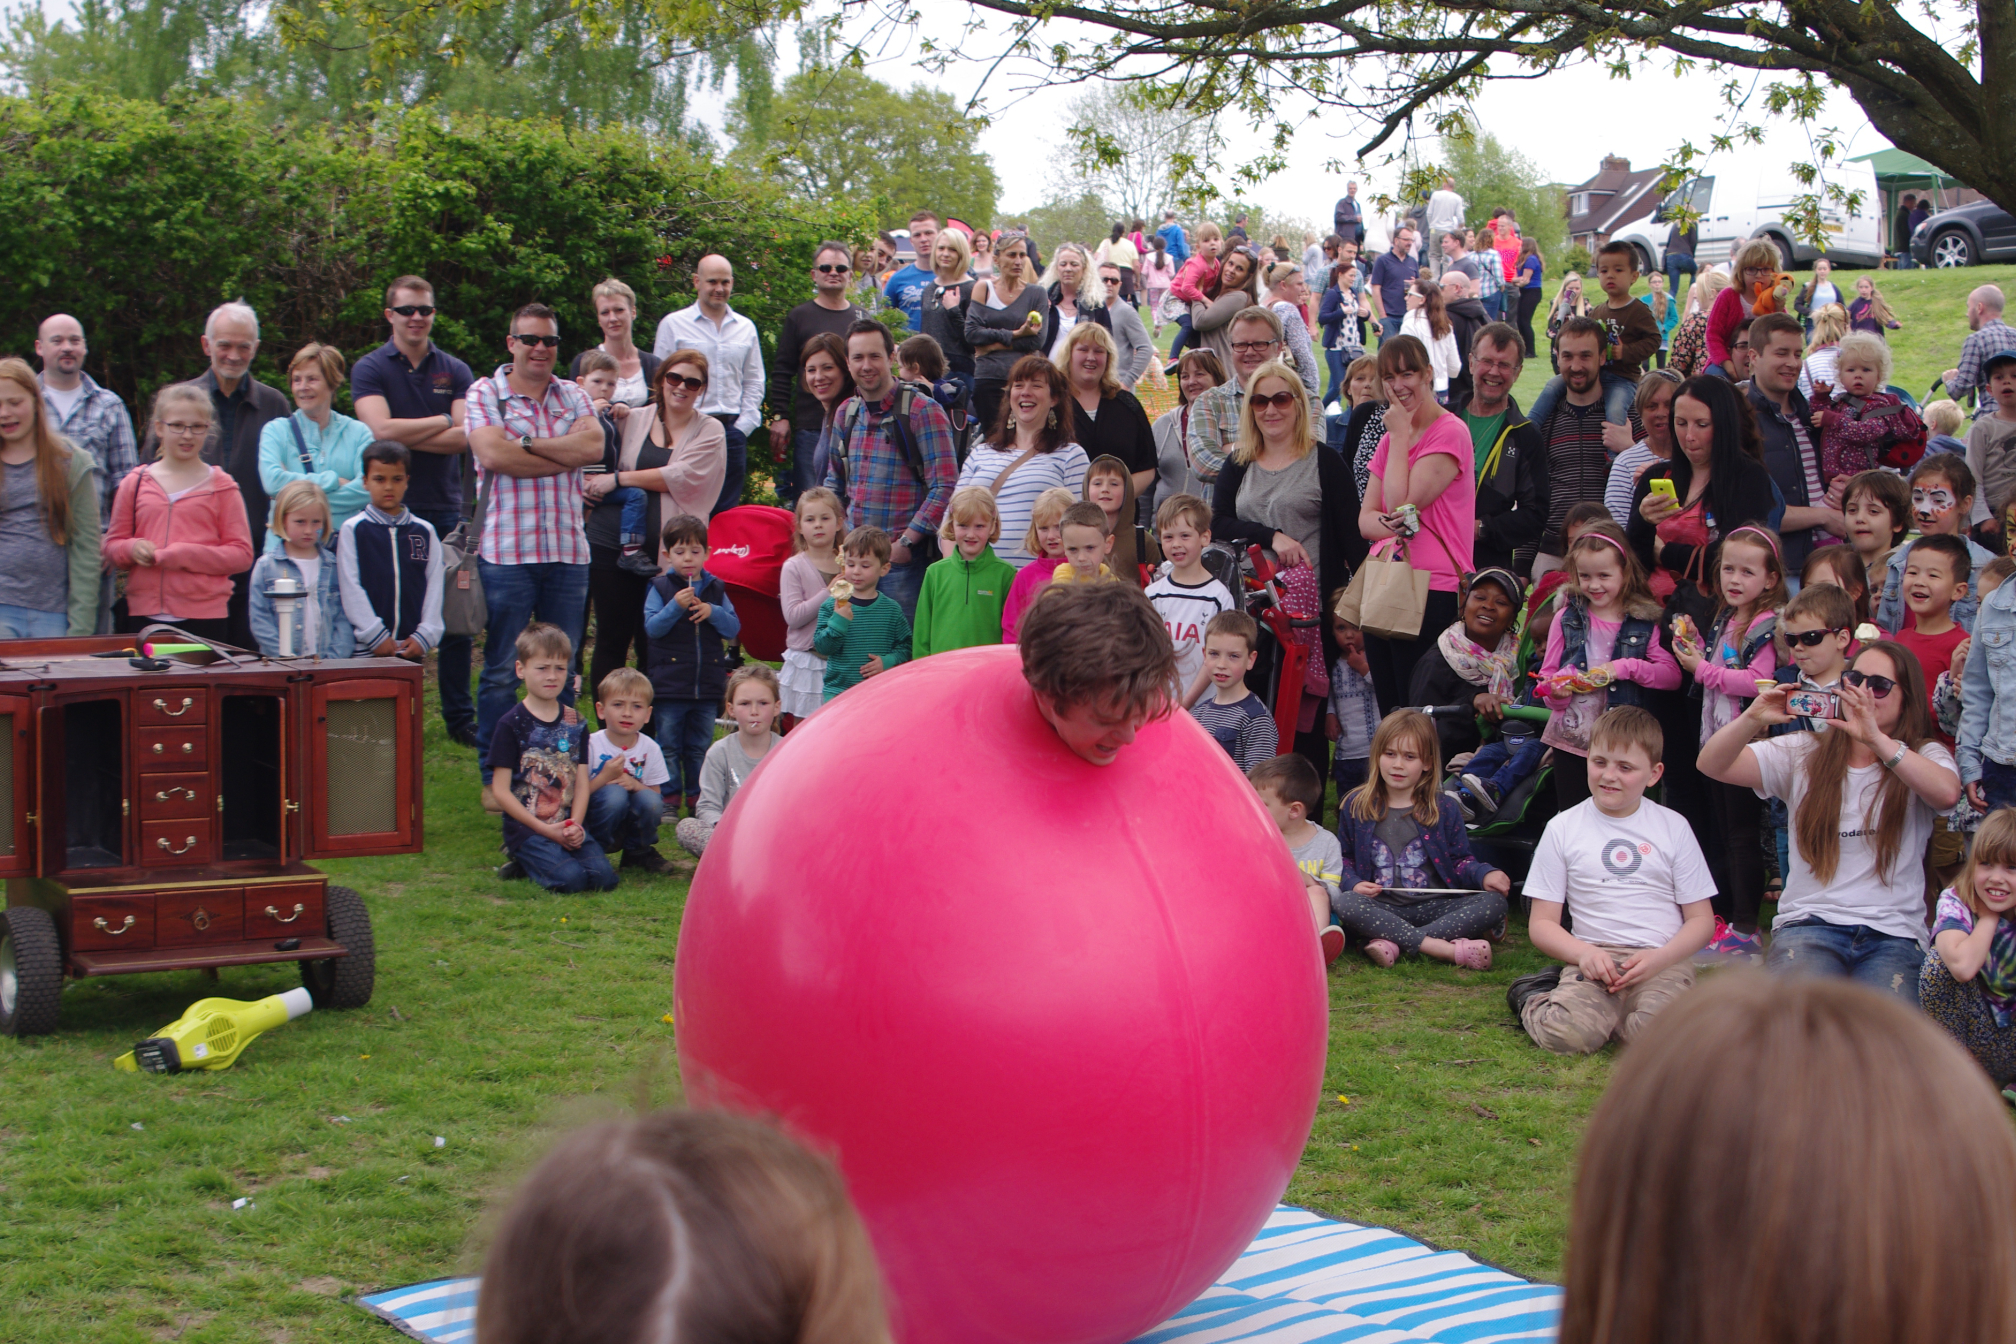 Crowd watching an artists emerge from a giant balloon